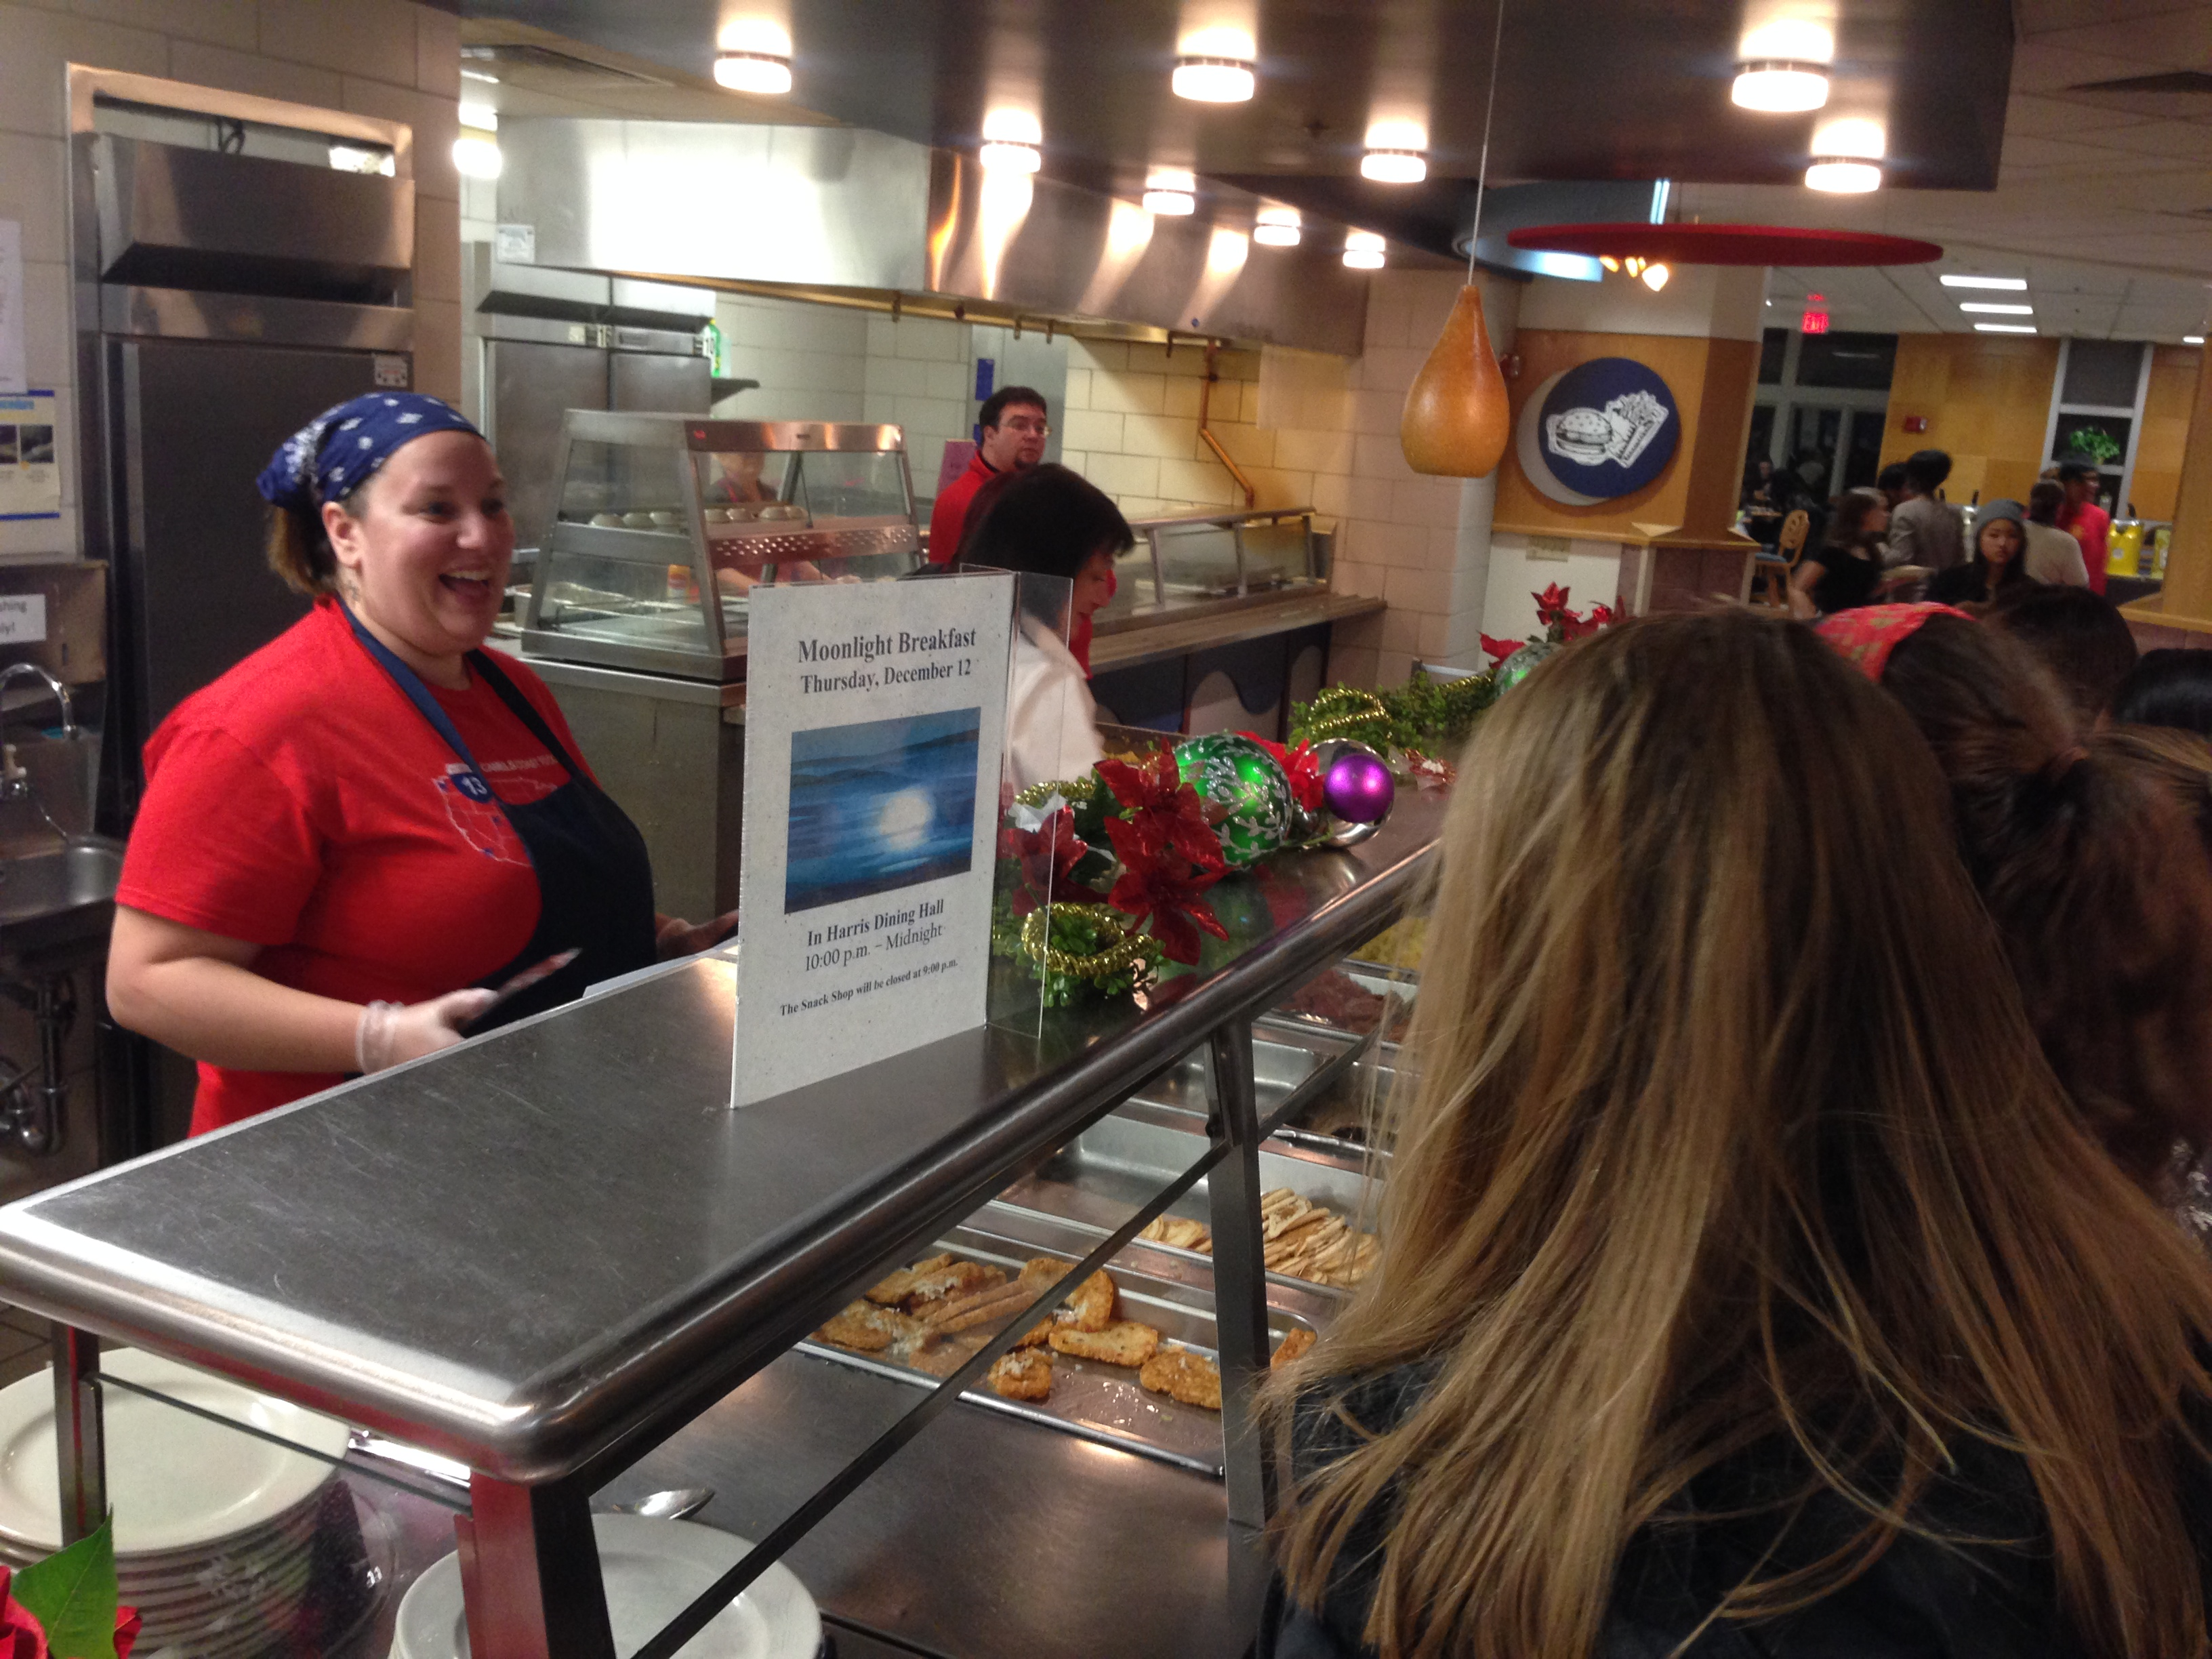 Director of Residential Education and Living serves food to students